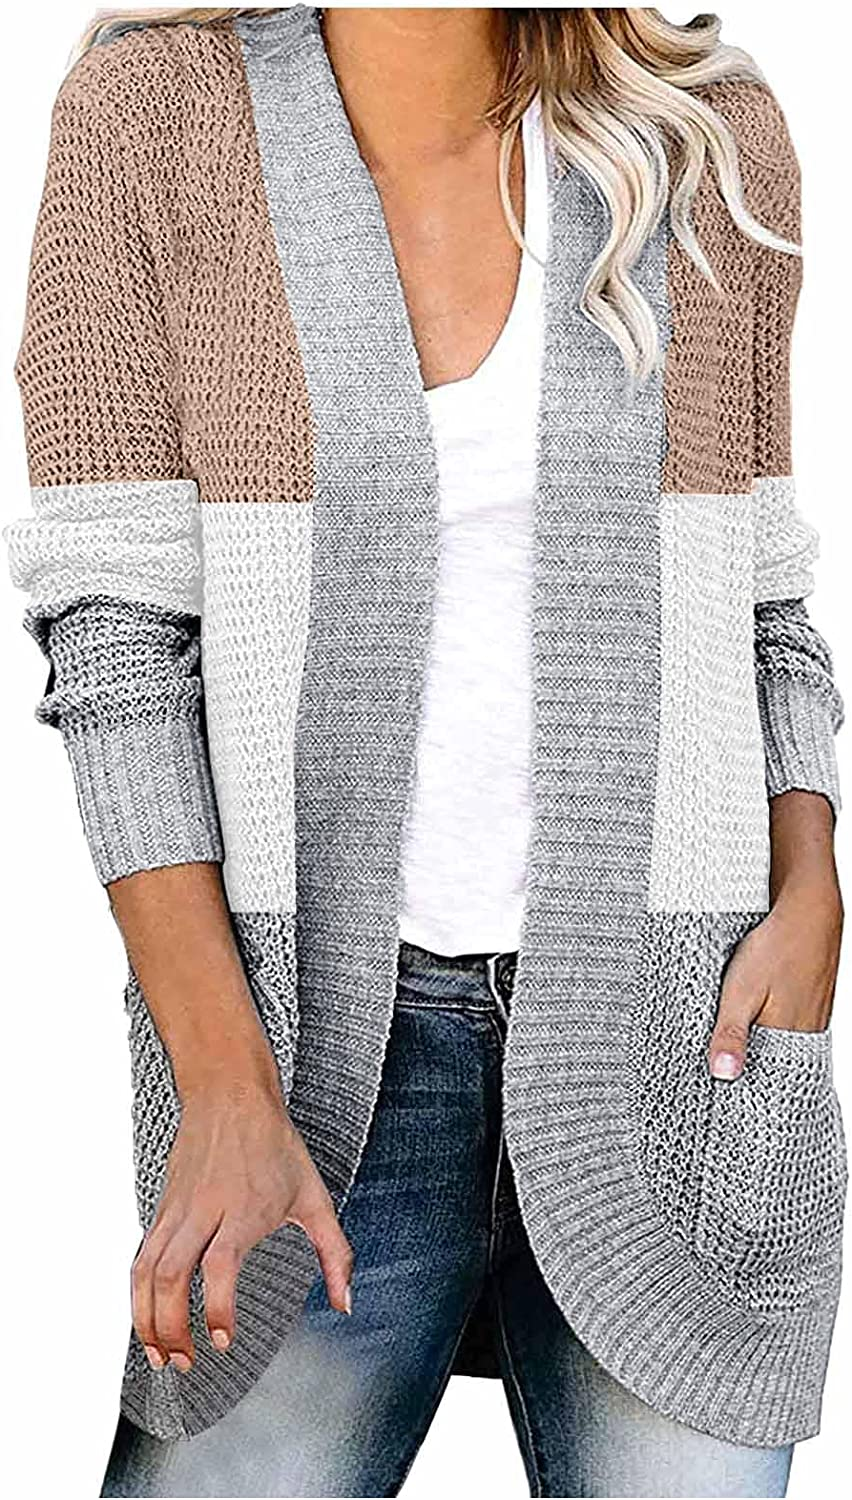 Womens Classic Draped Cardigans,Long Sleeve Lightweight Open Front Loose Chunky Knit Cardigan Sweaters Coat Soft Outwear